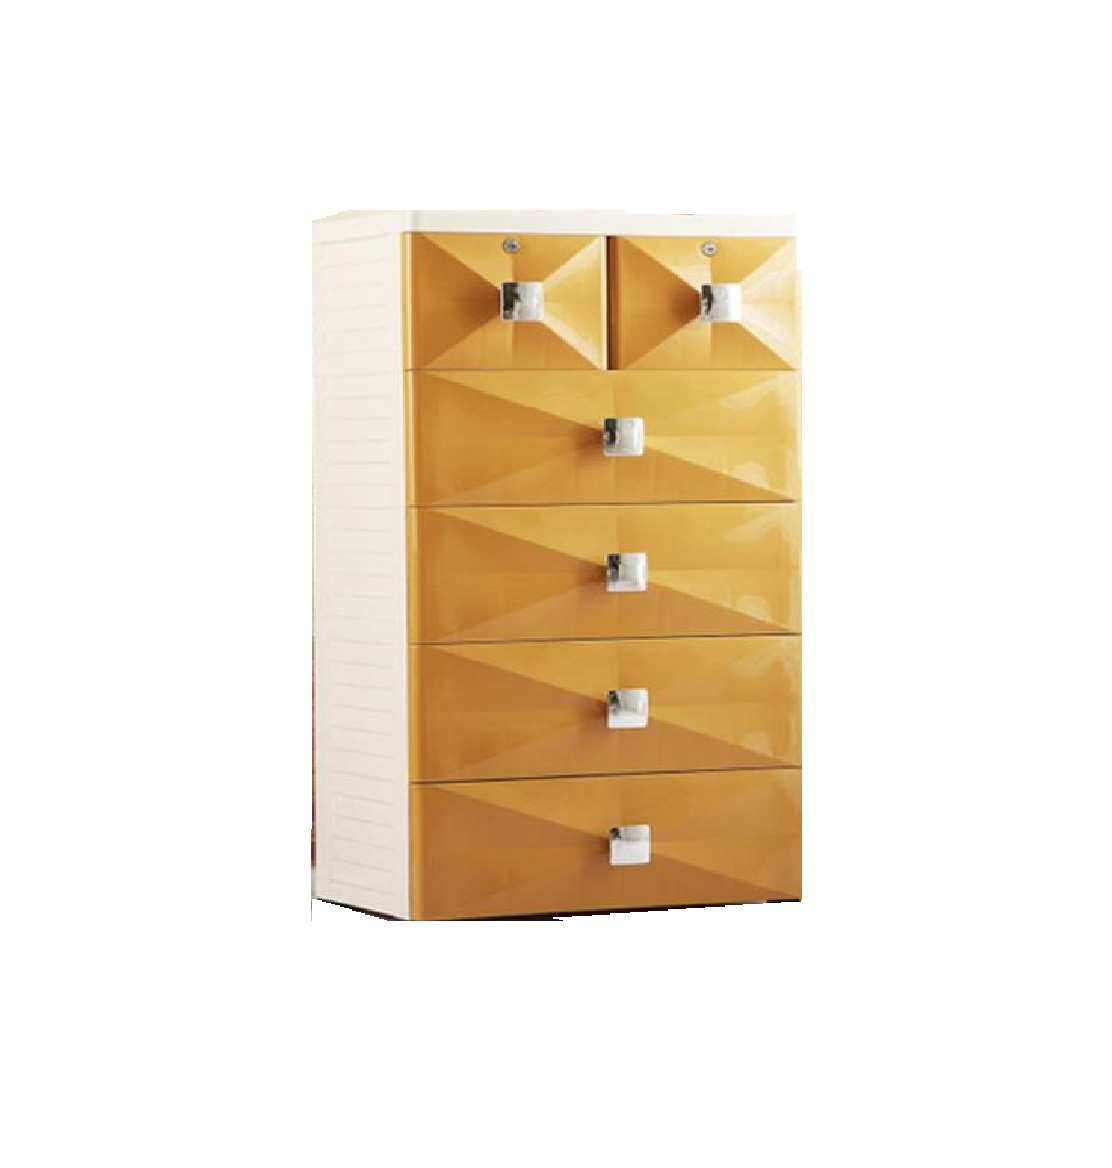 Fiber Plastic Chest of Drawers/Organizer/Storage Box DIY 6 Drawers Gold 60 L 40 D 113 H CMS